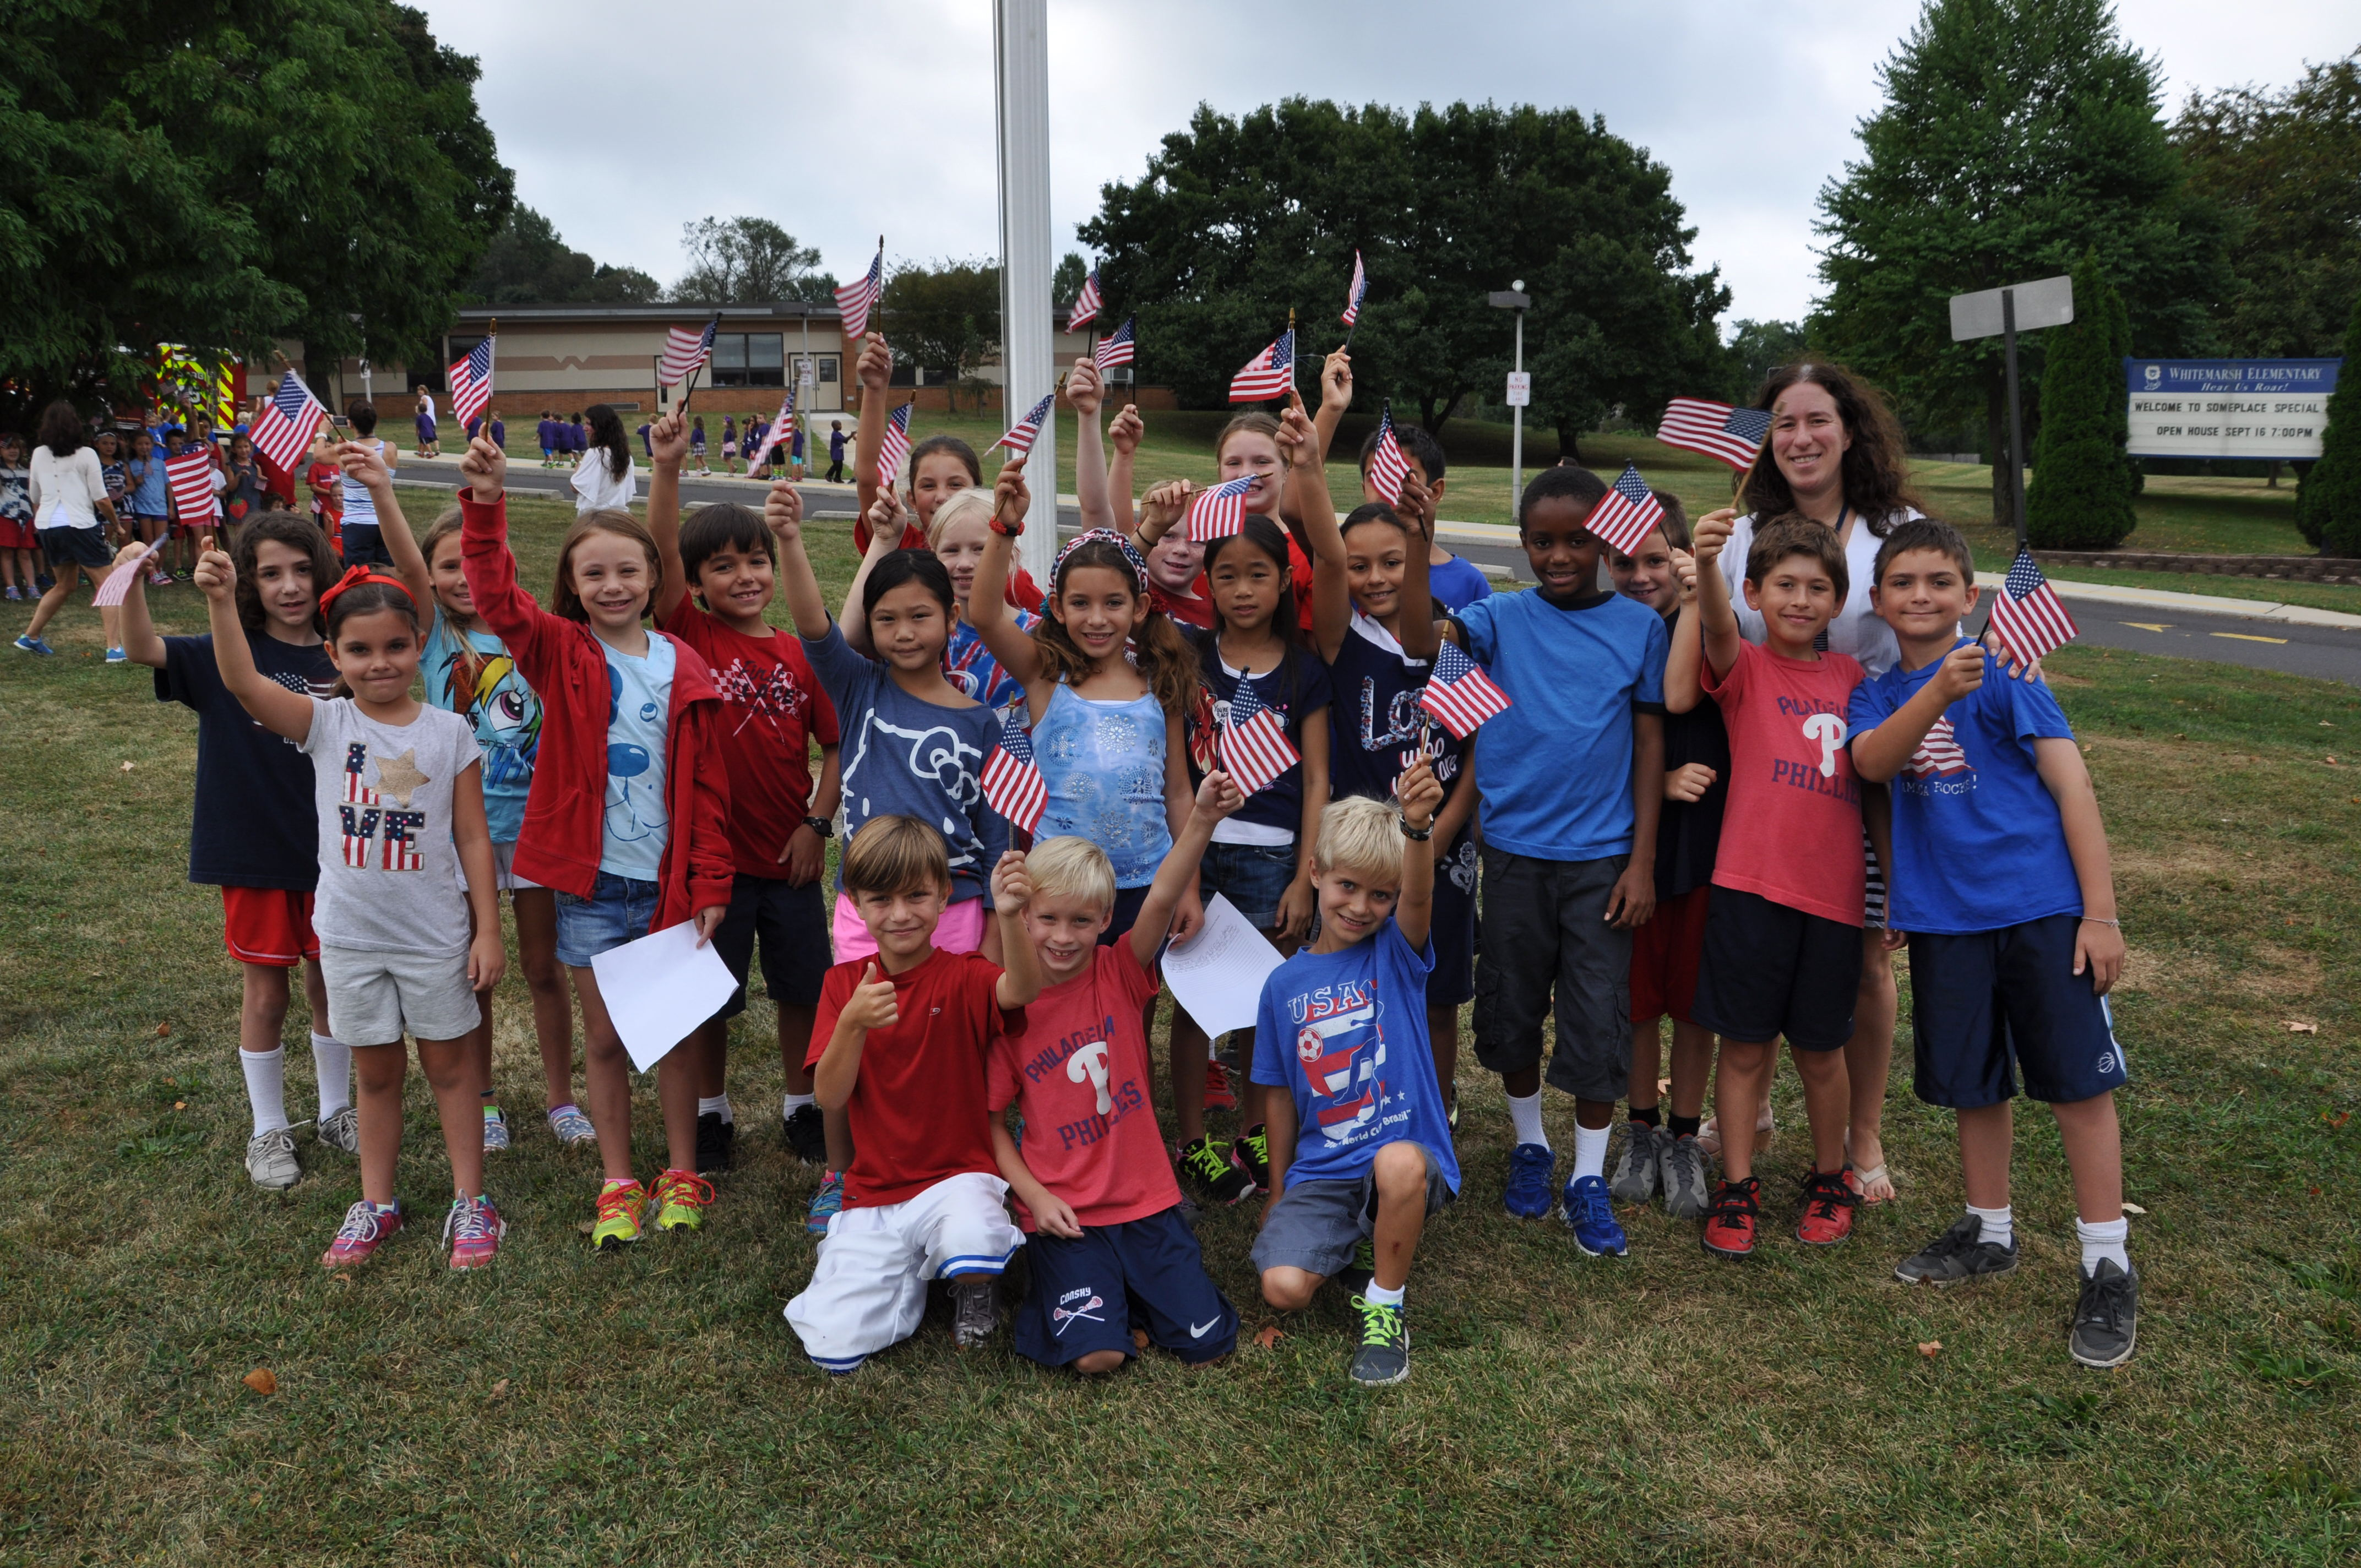 Whitemarsh Elementary celebrates America and honors heroes on 9/11